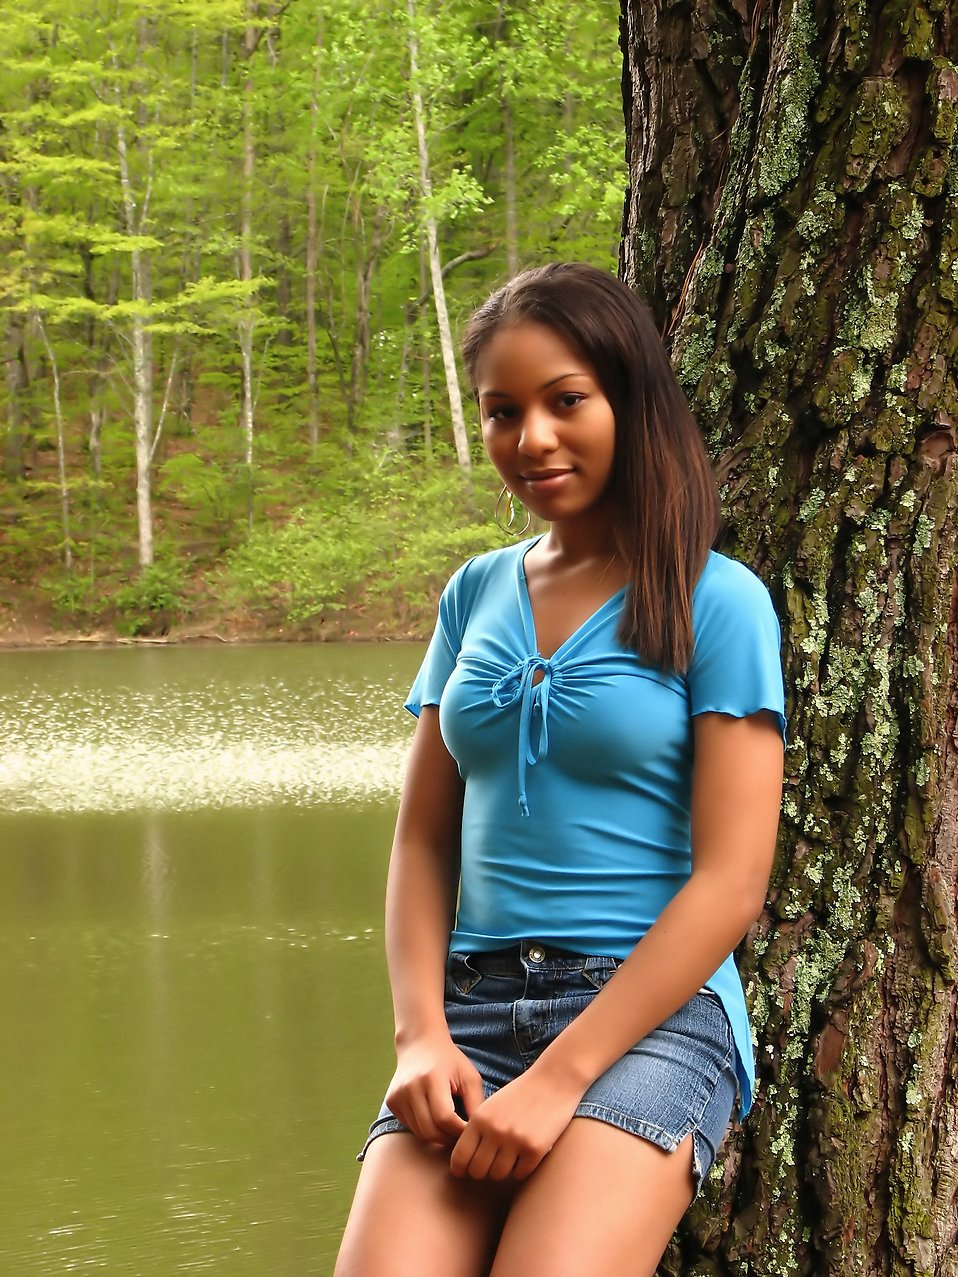 A beautiful African American teen girl posing against a tree by a lake : Free Stock Photo